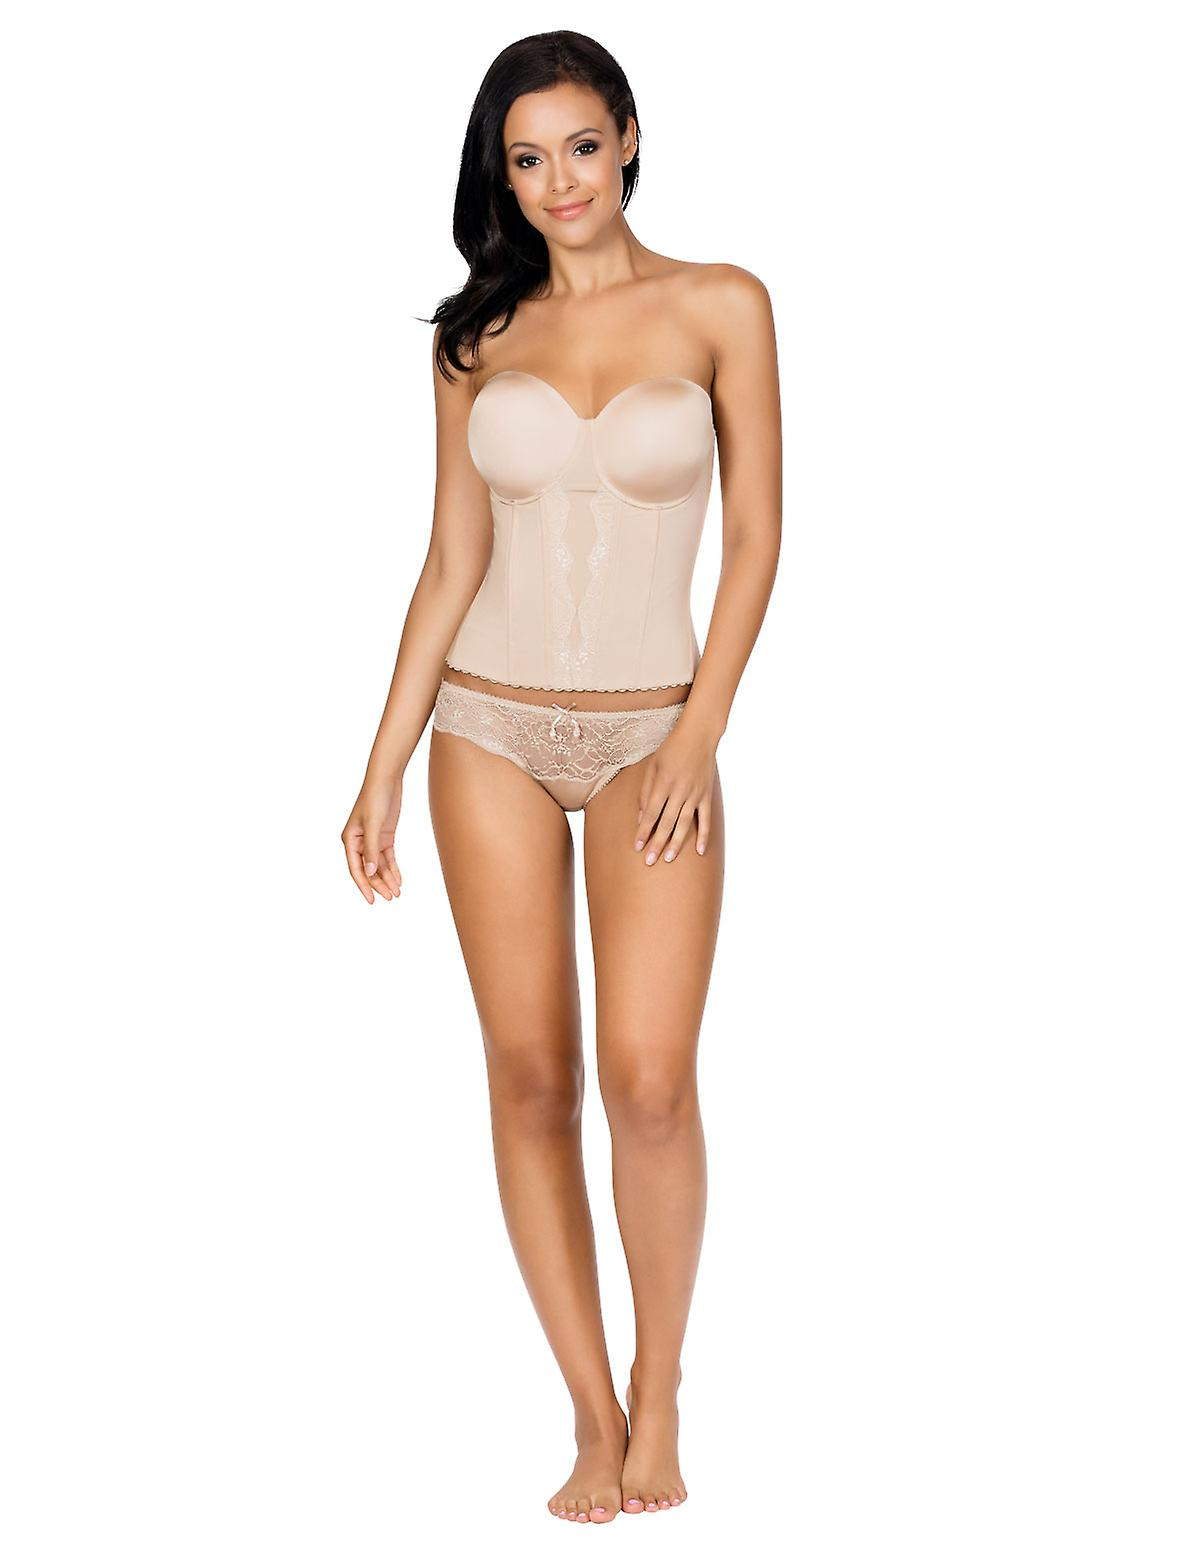 07bc253bad4 Parfait P5017 Women s Elissa European Nude Underwired Corsetted Top Low-Back  Bustier